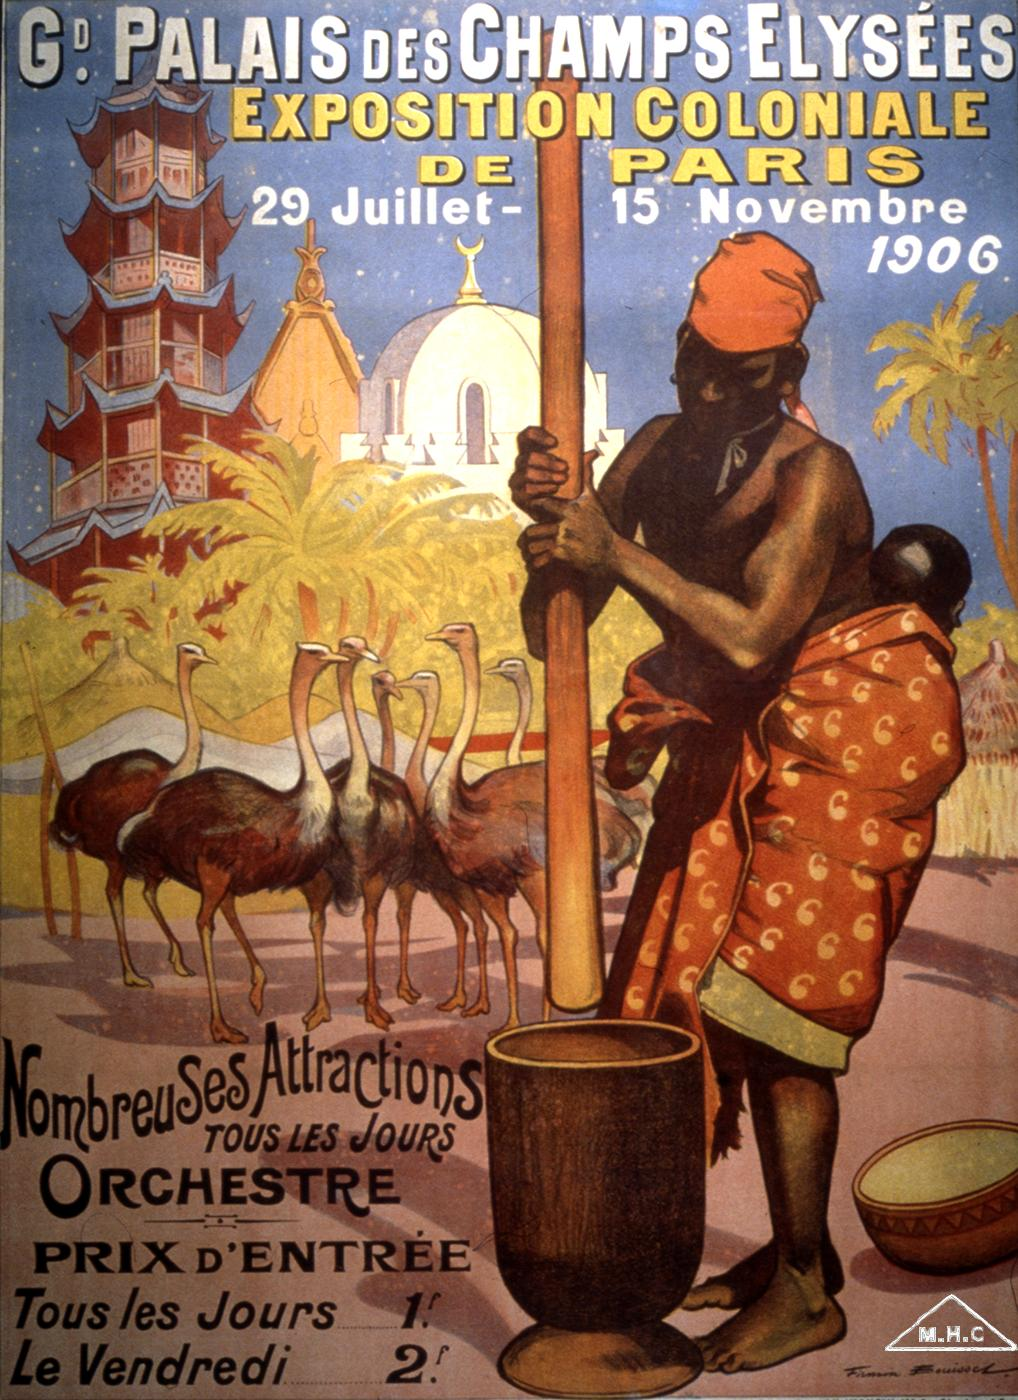 affiche expo coloniale paris